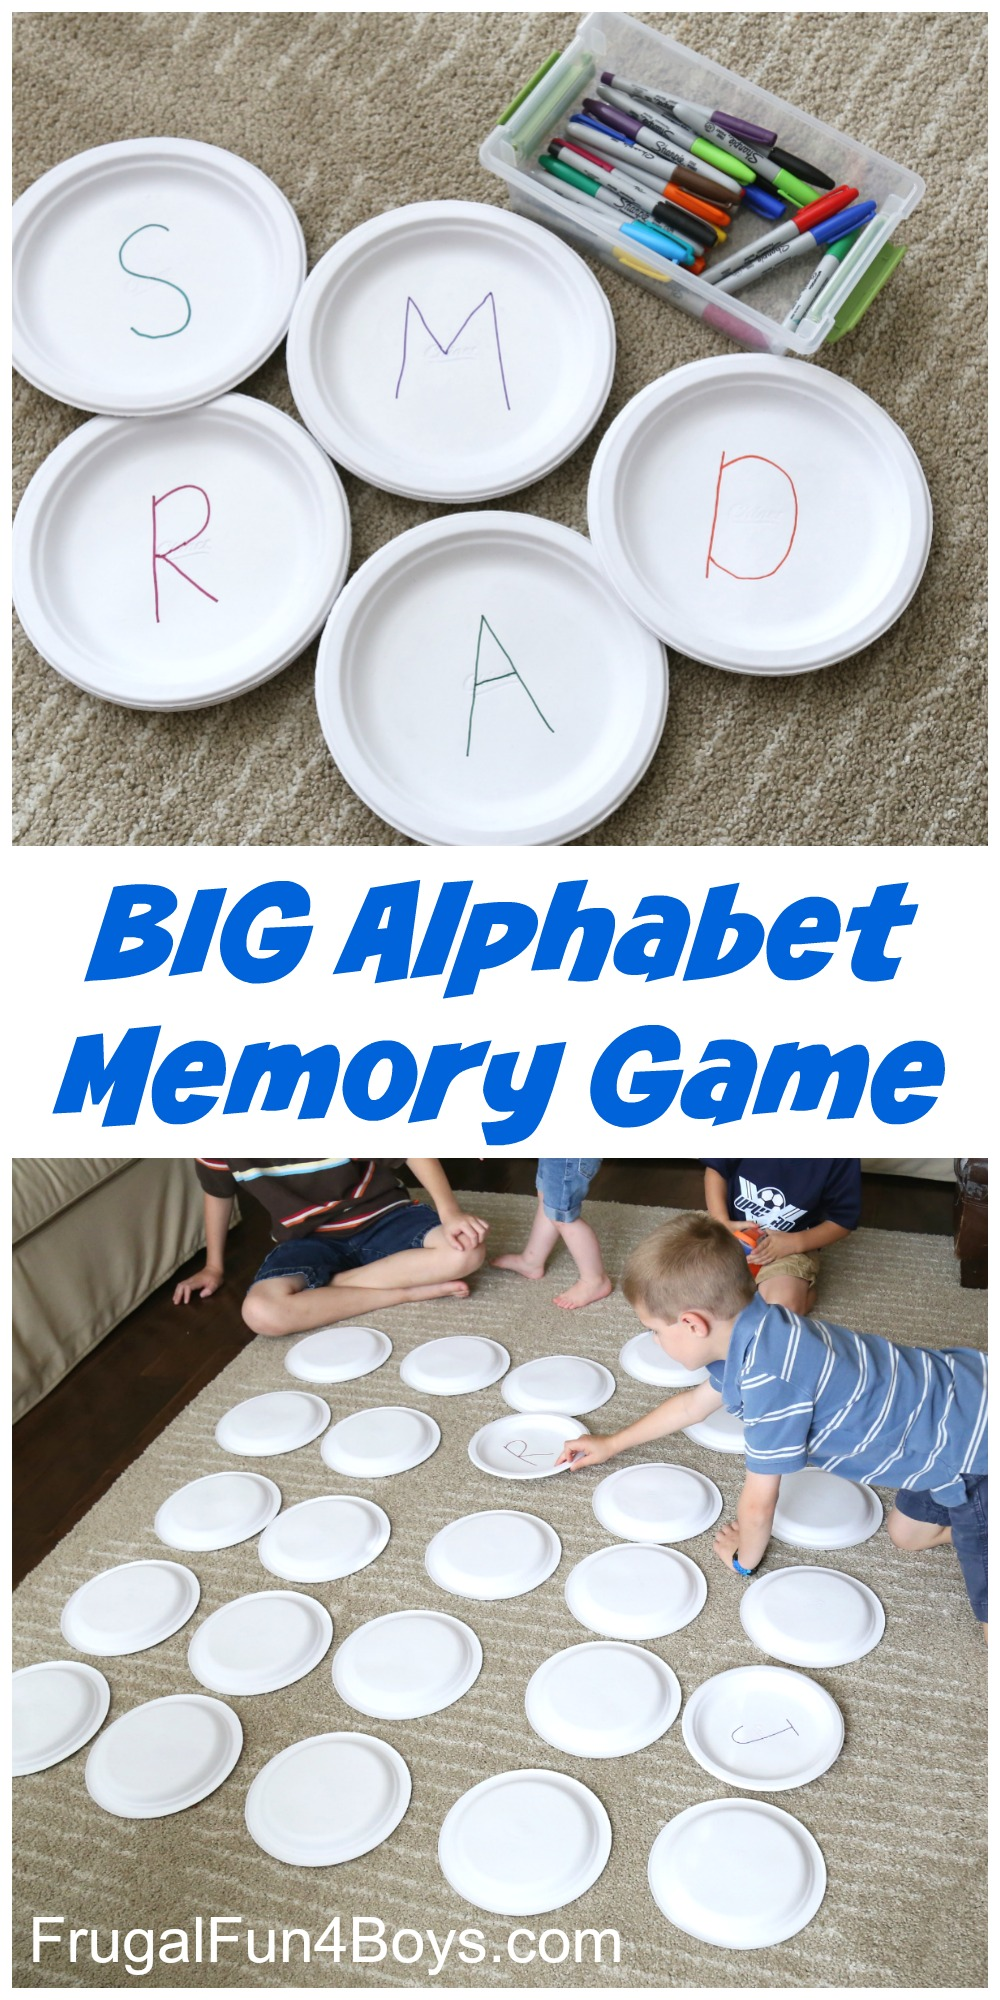 Here's a fun preschool alphabet game that will have kids learning their letters in no time! Jonathan loves playing the memory game, so I thought why not combine it with learning the alphabet! Paper plates are such a handy craft supply. I grabbed a stack and wrote letters on them with Sharpies. I did pairs …